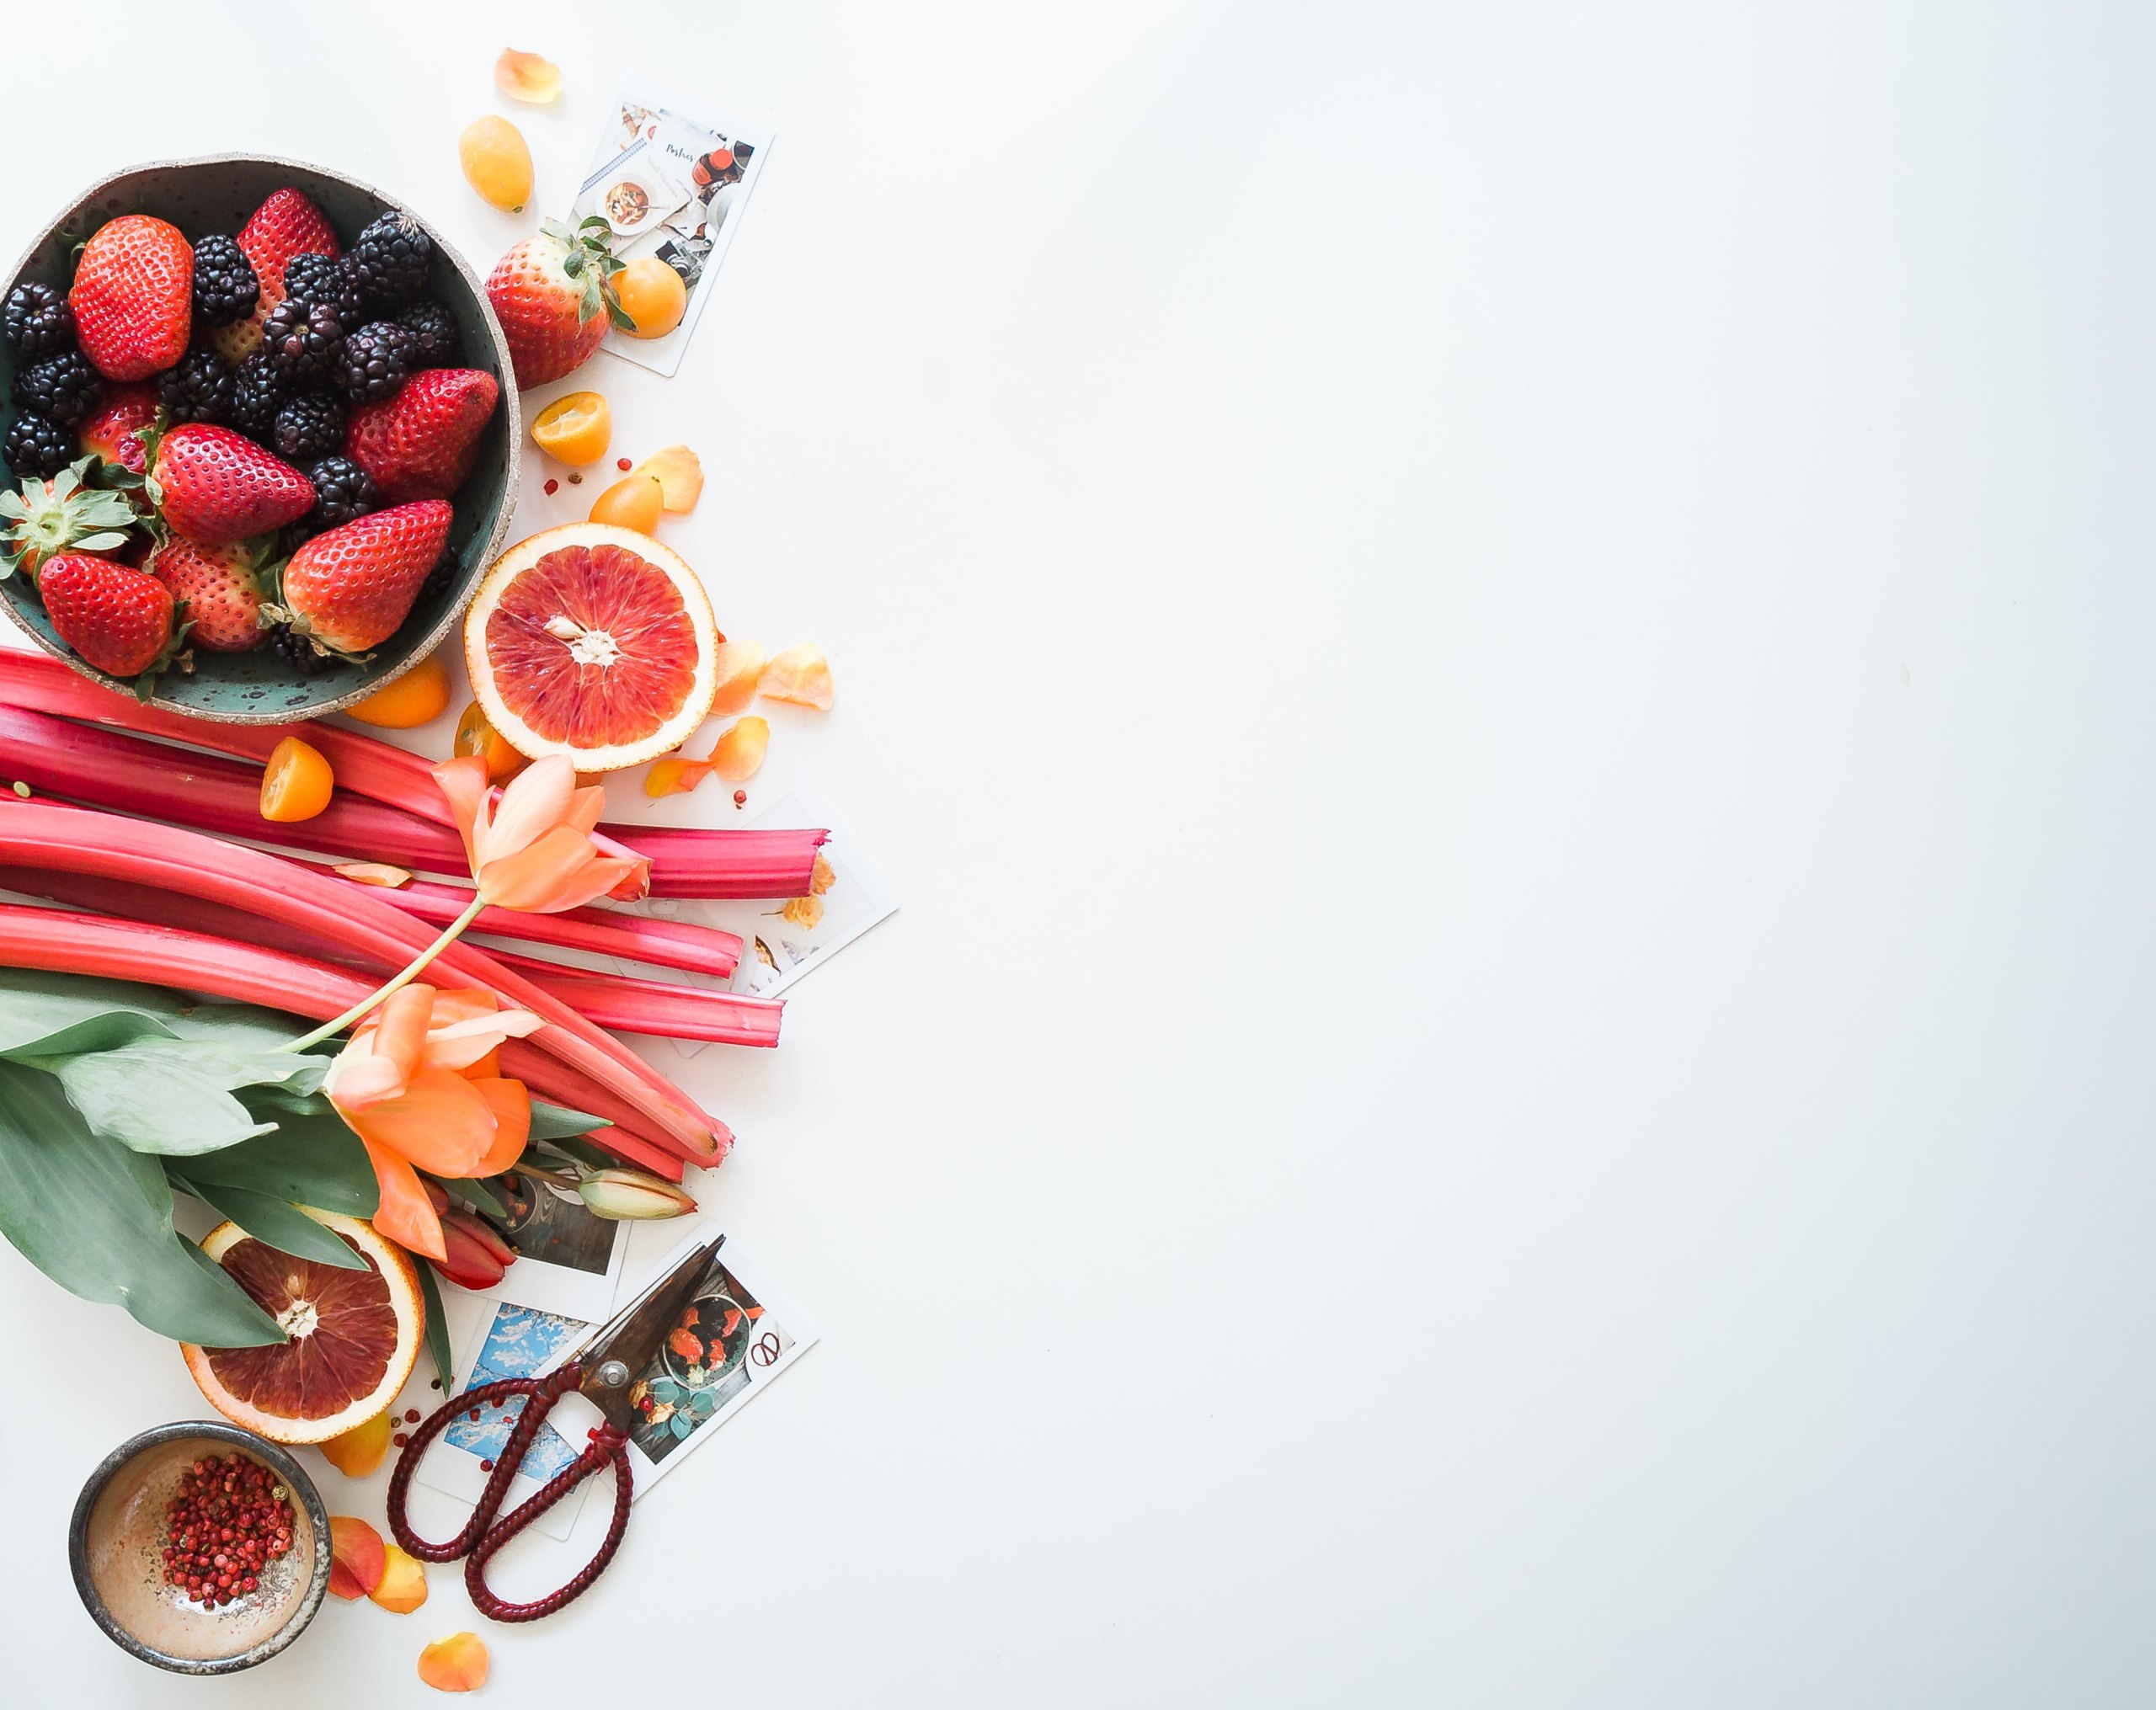 Healthy food on the left side of image